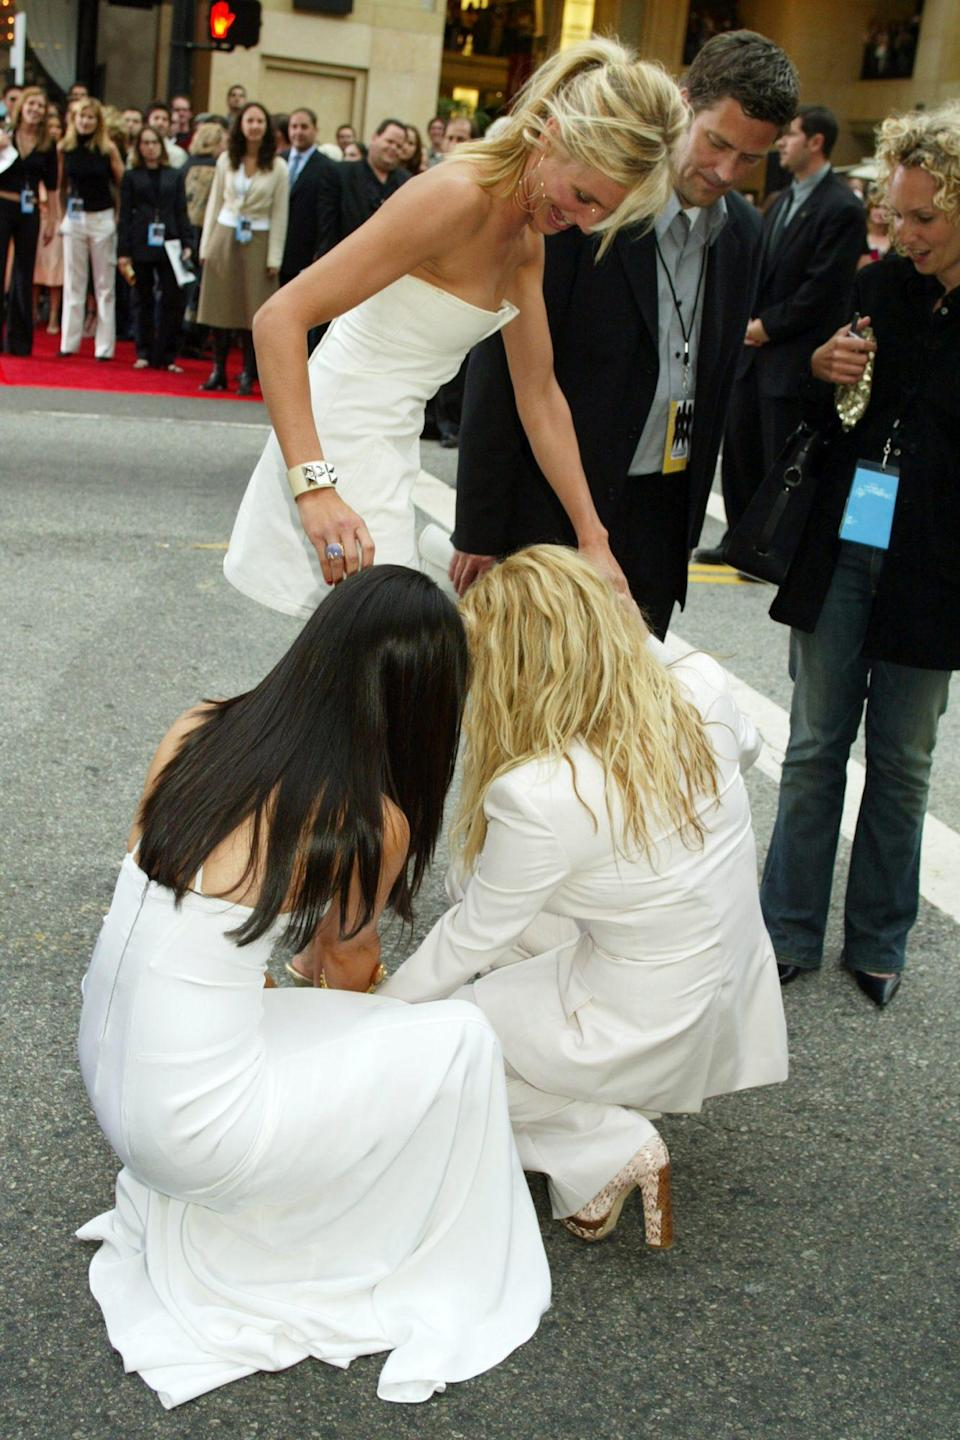 <p>Proving themselves to be angels IRL, Liu and Barrymore gave Diaz a hand getting out of her painful pumps, much to the delight of the paparazzi.</p>